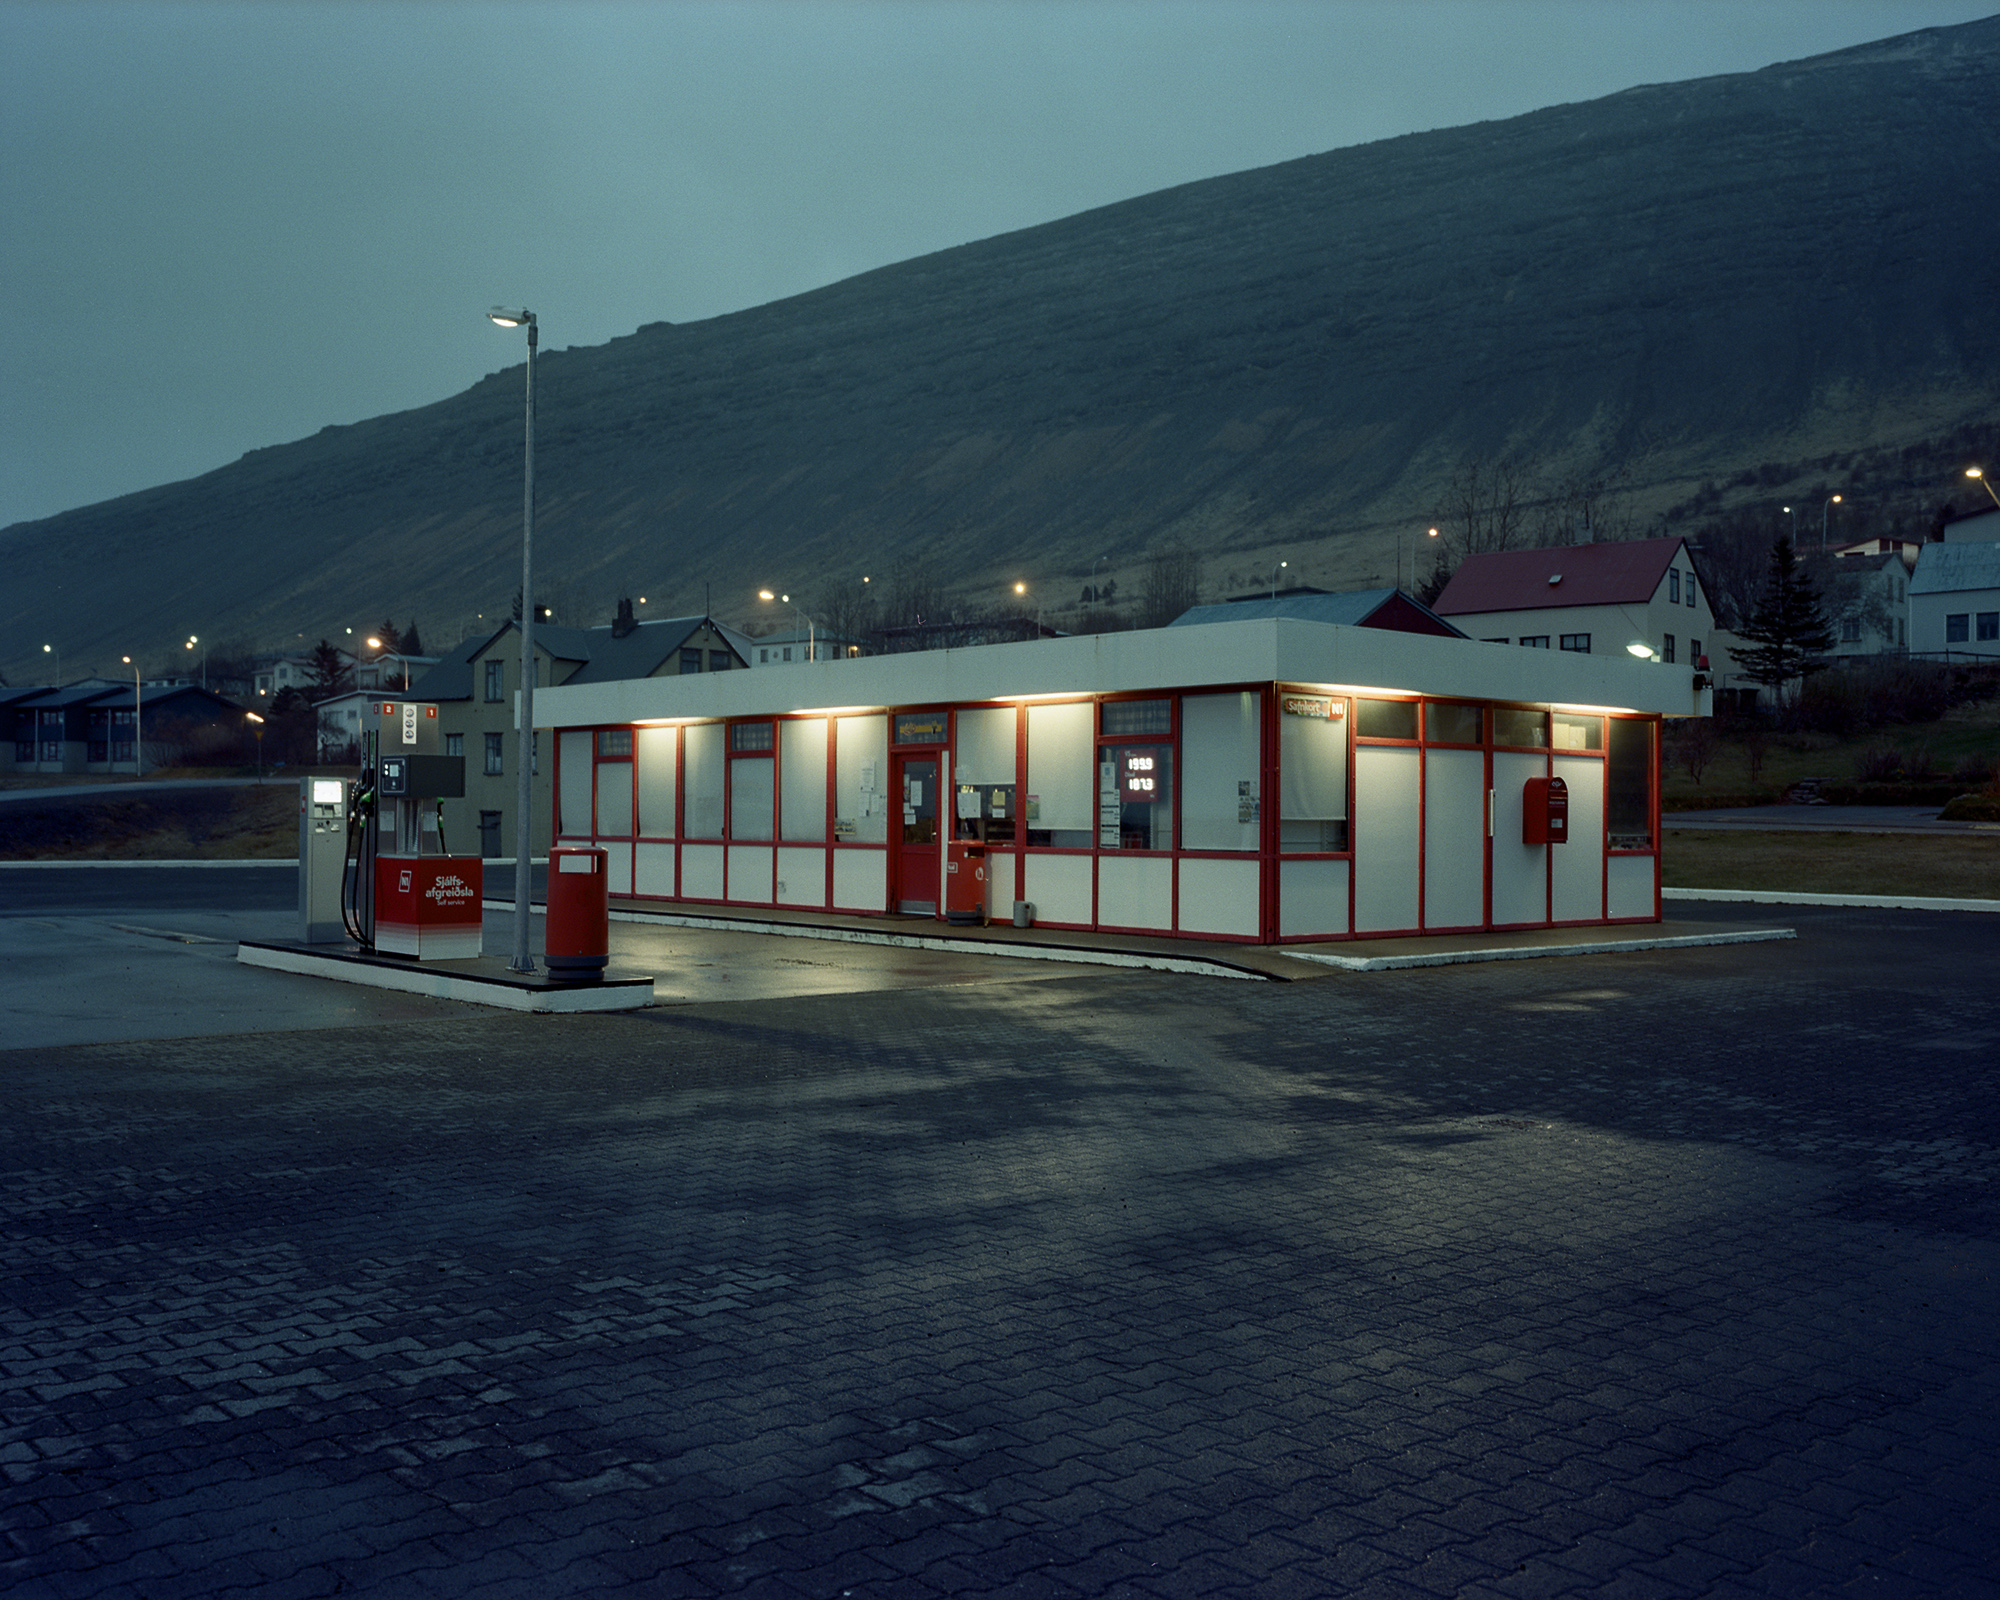 foto: Chris André Aadland - The Petrol Station""